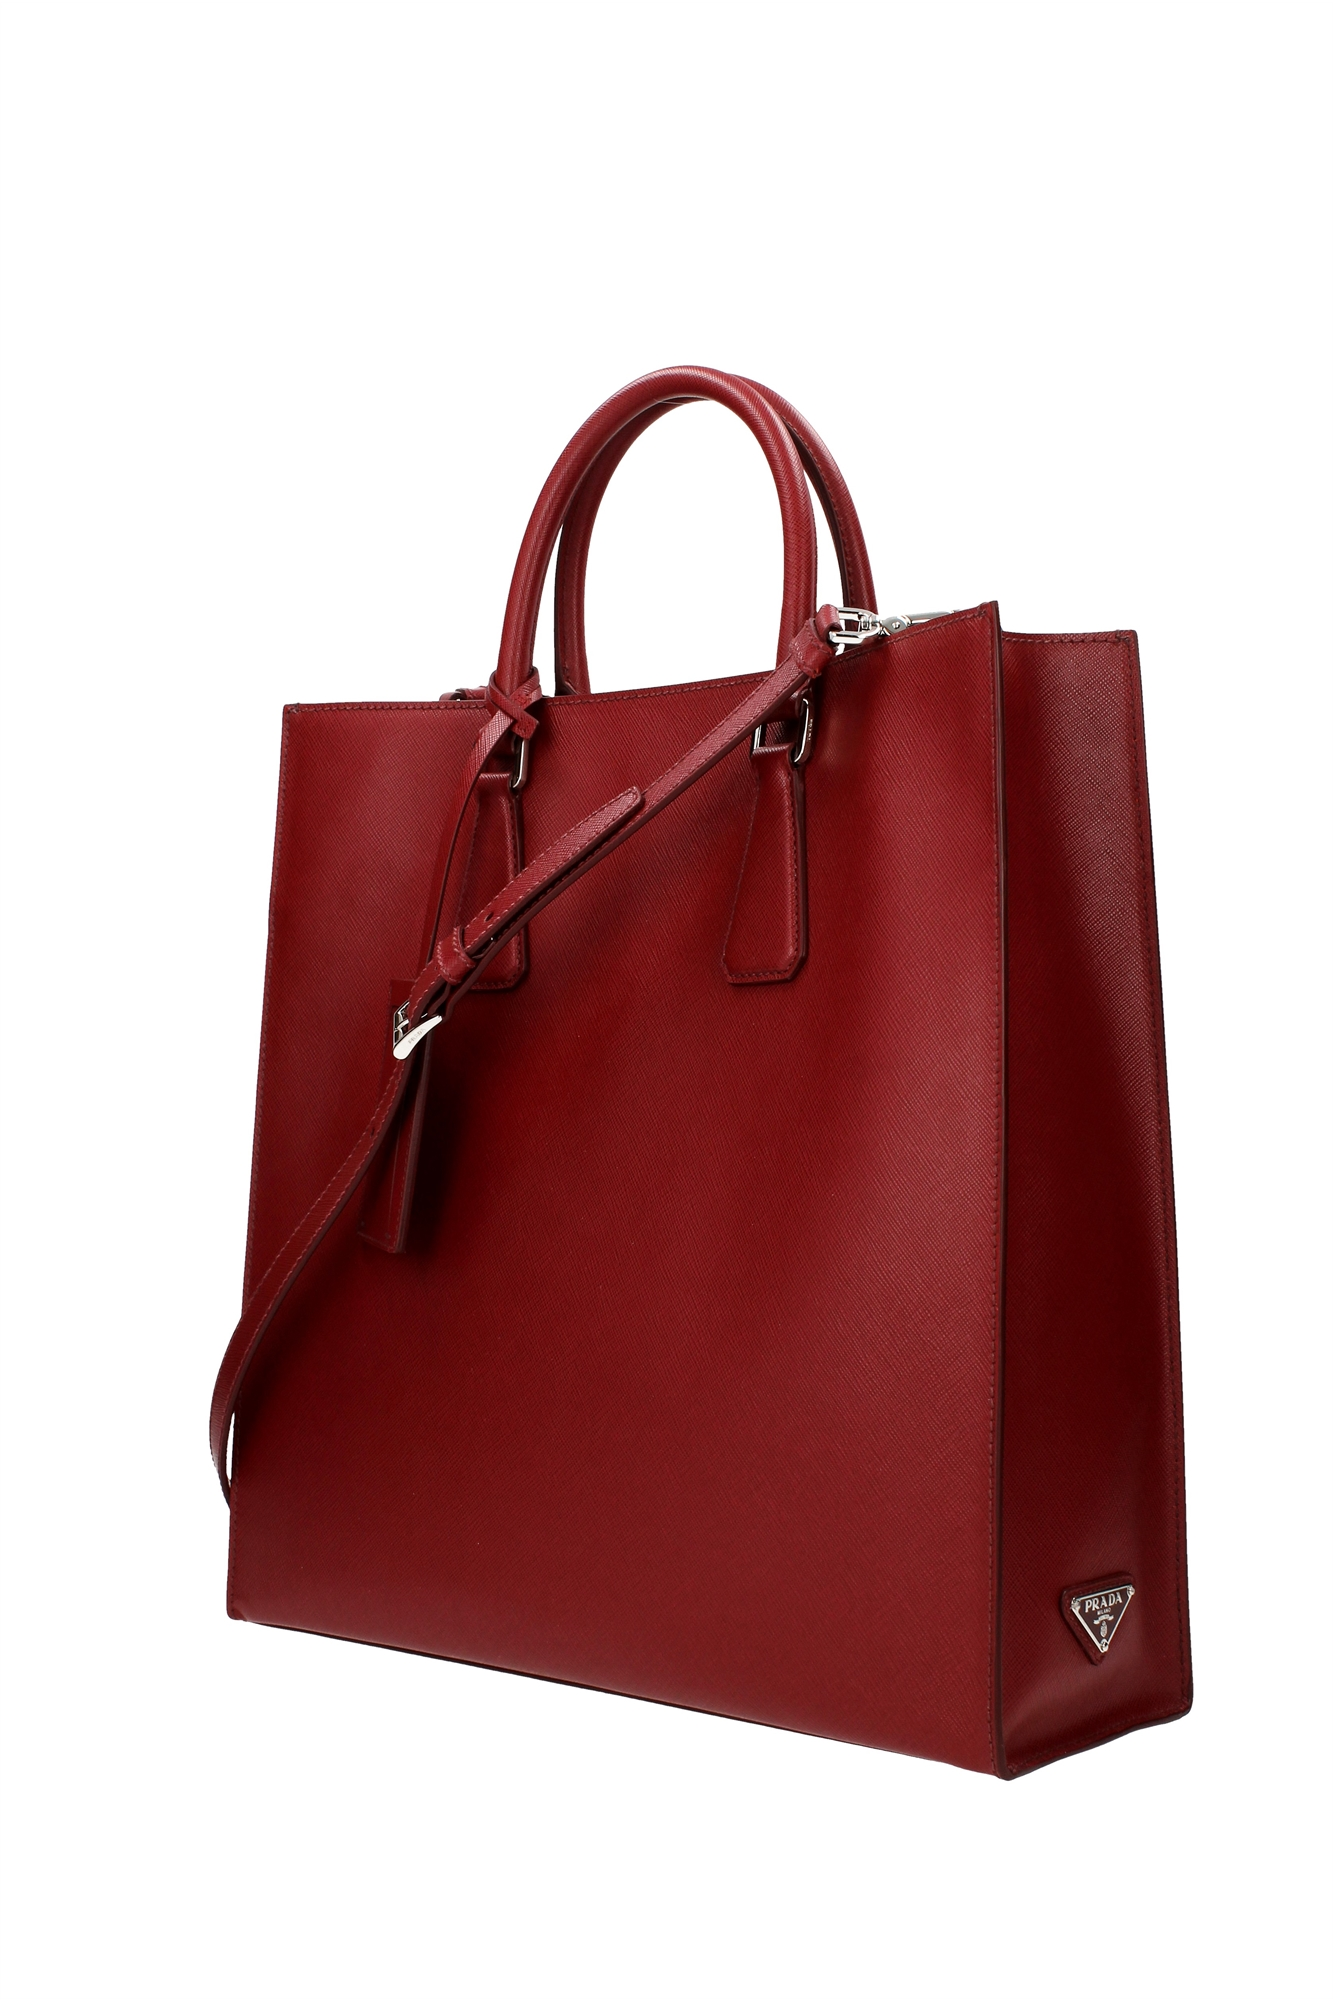 Excellent Prada Saffiano Calf Leather Tote For Women | All Handbag Fashion